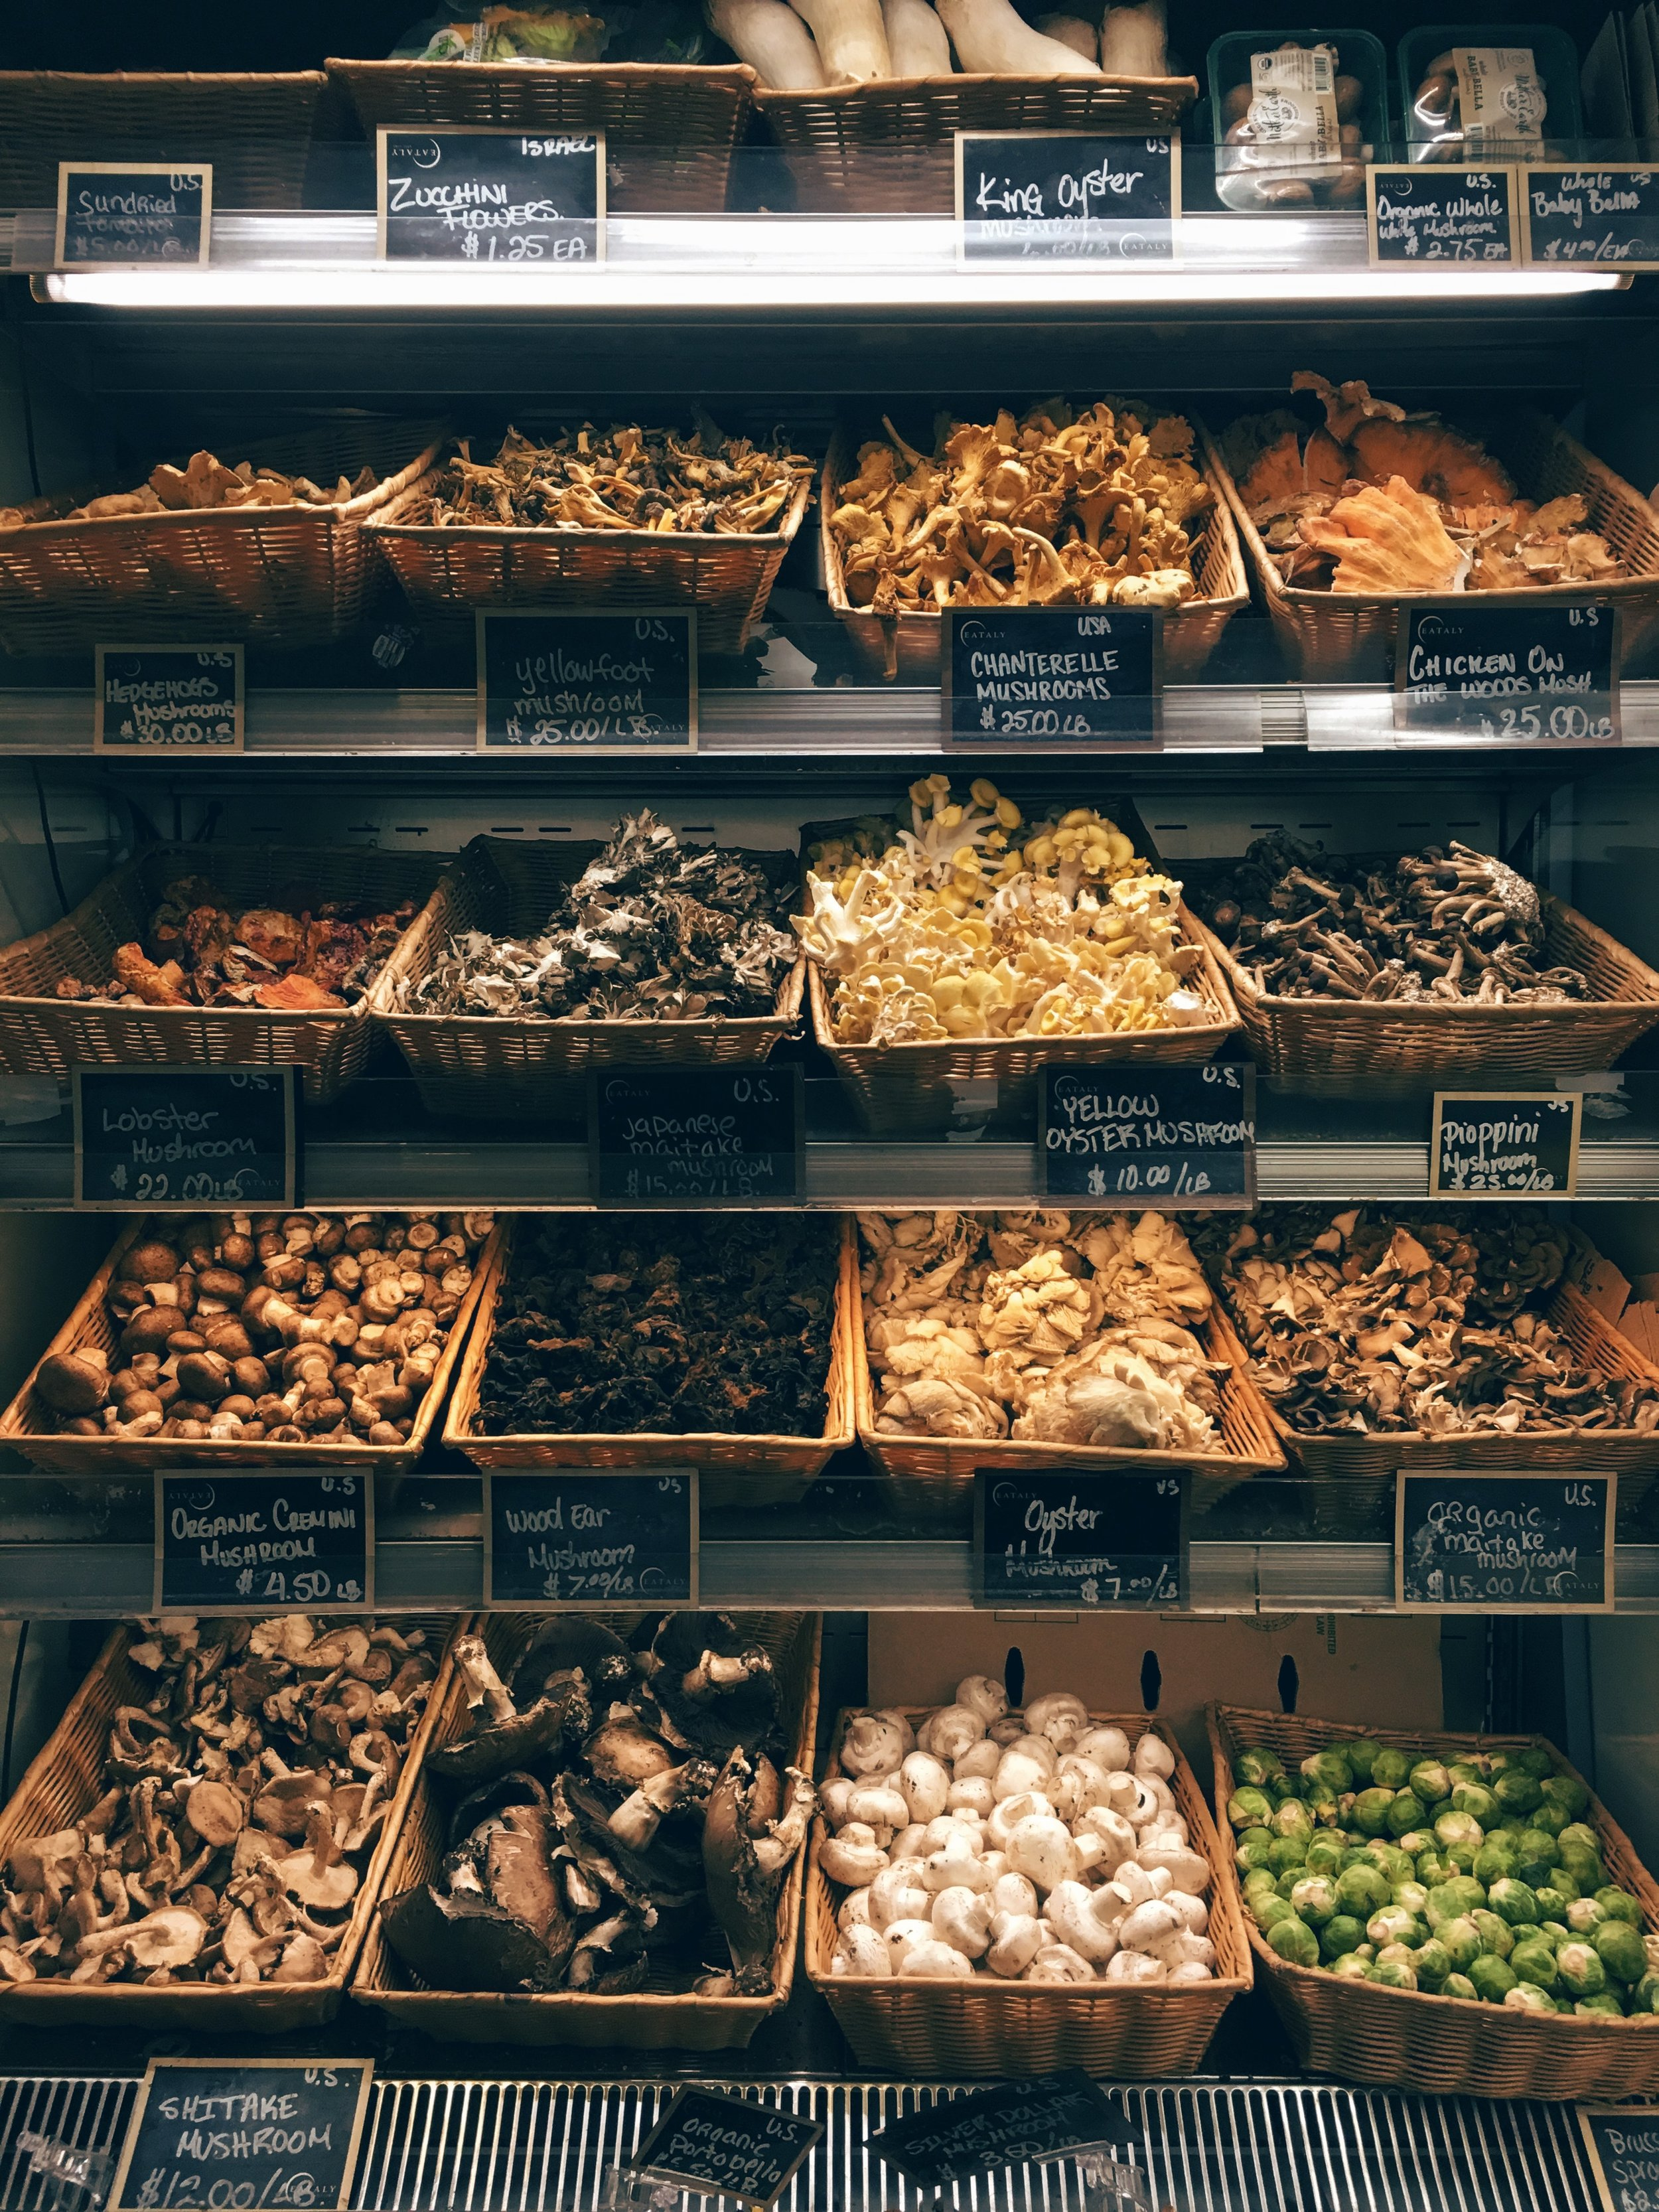 Mushrooms stand at Eataly.Take your pick!